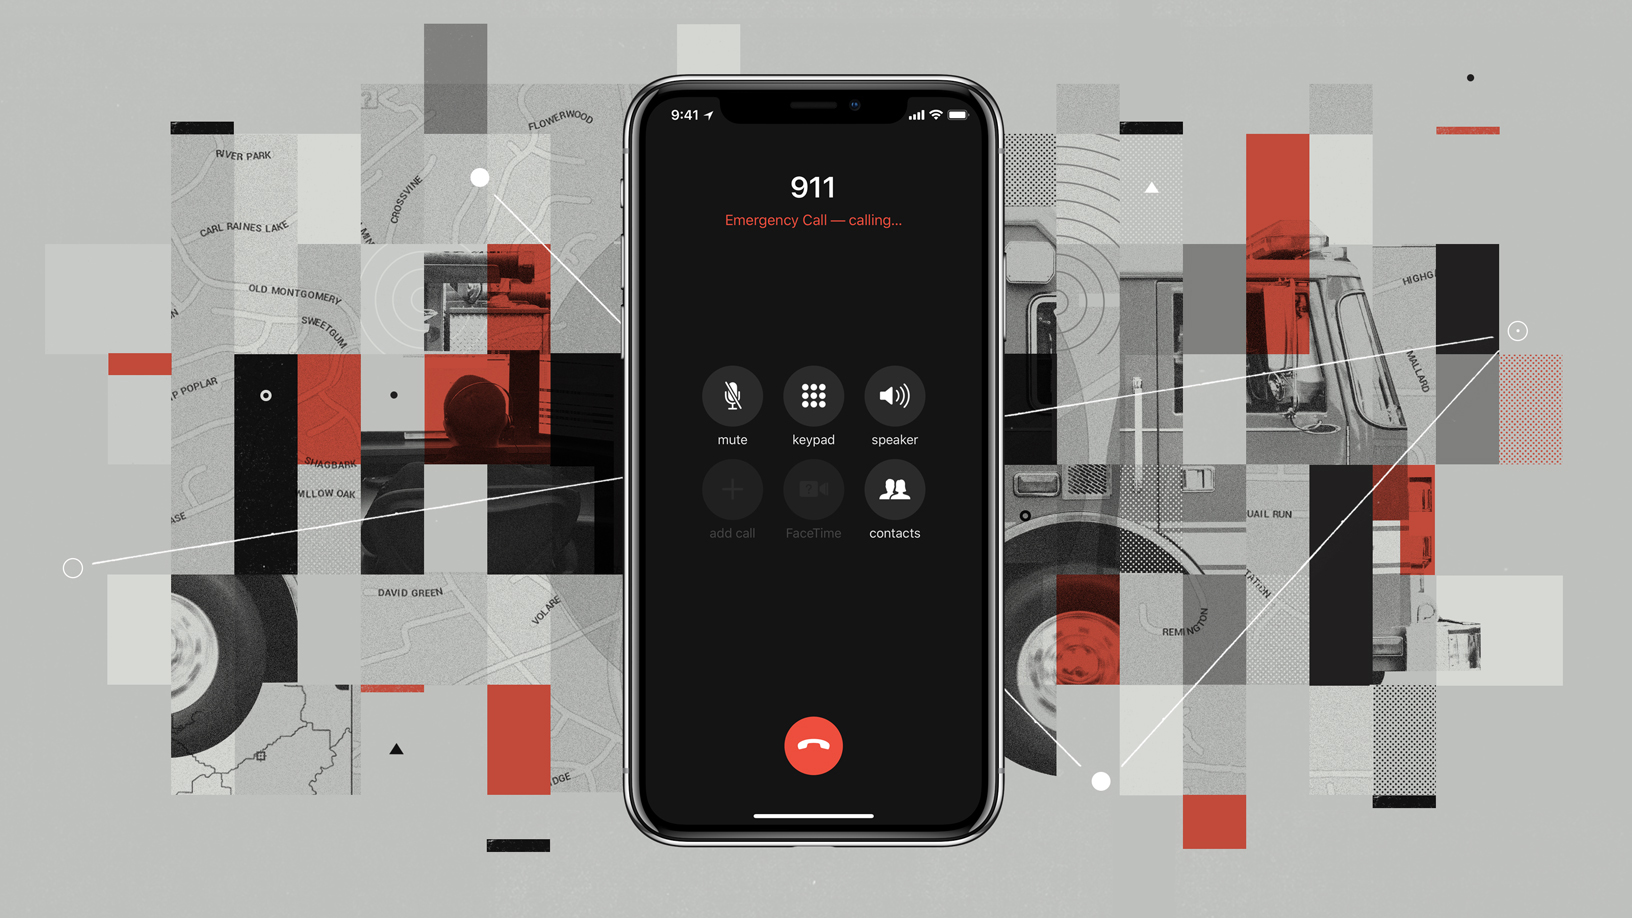 This New 911 Feature in iOS 12 Could Save Your Life | Tom's